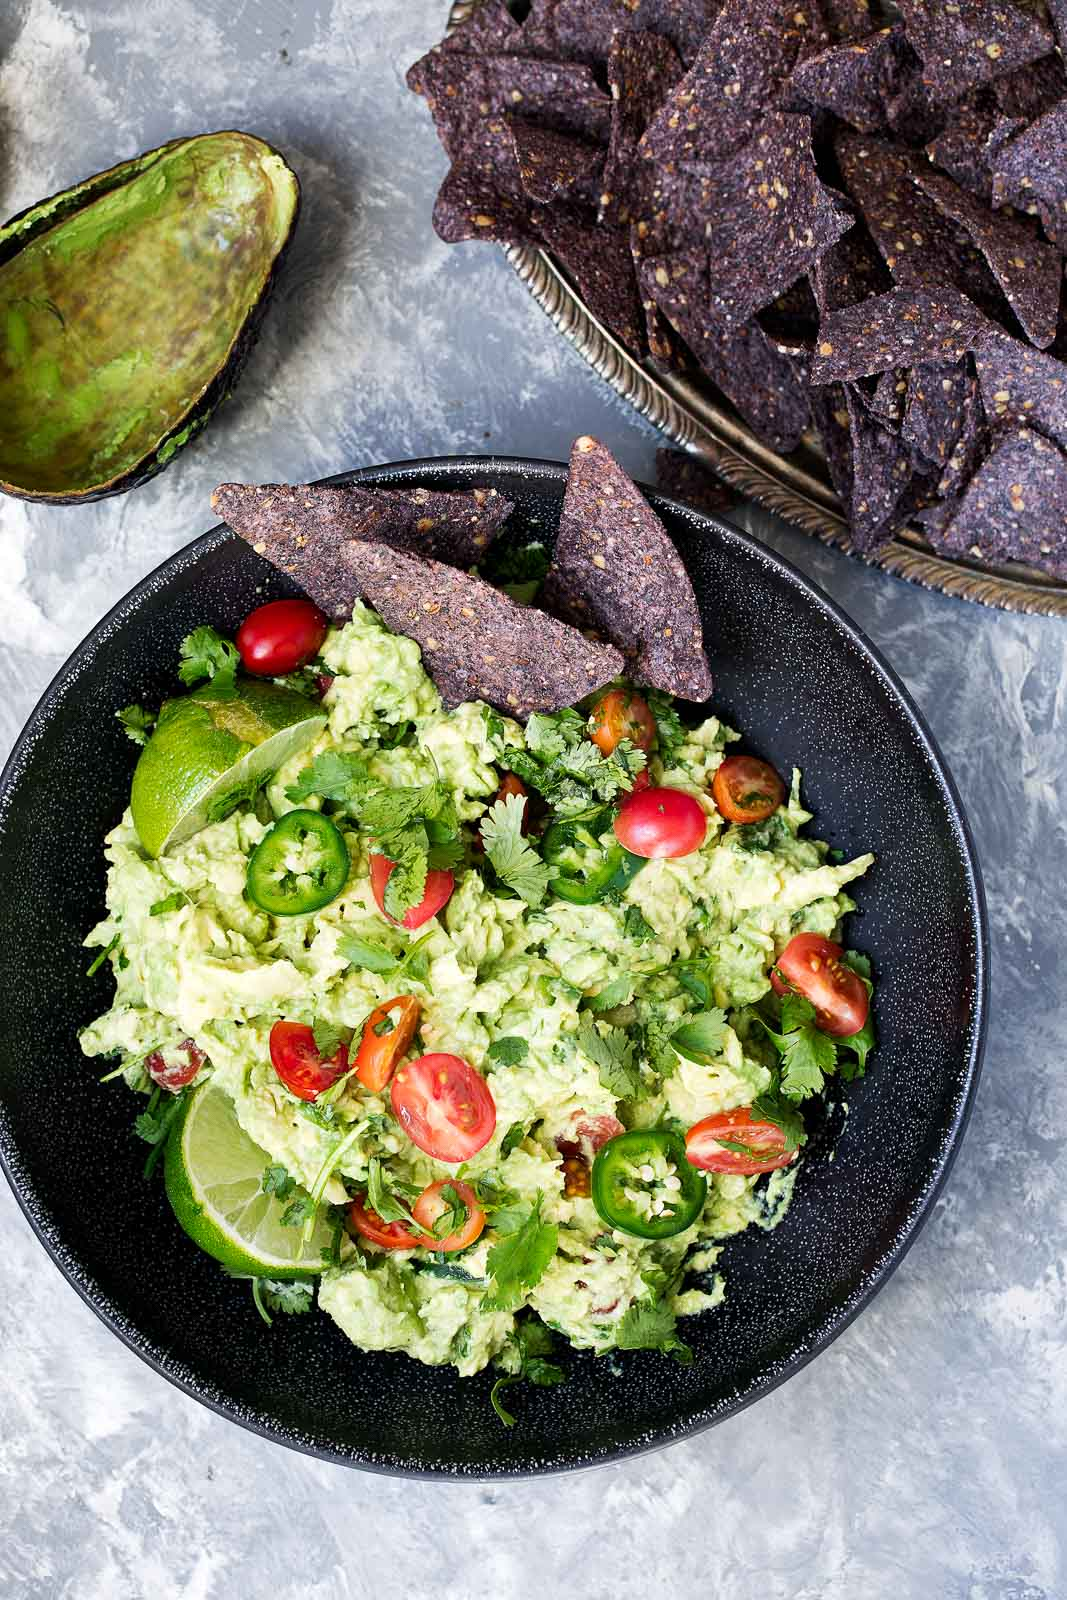 The best guacamole recipe EVER. A mix between creamy and chunky with bites of heat from jalapeno and flavor from cilantro and lime juice. You need this in your life!